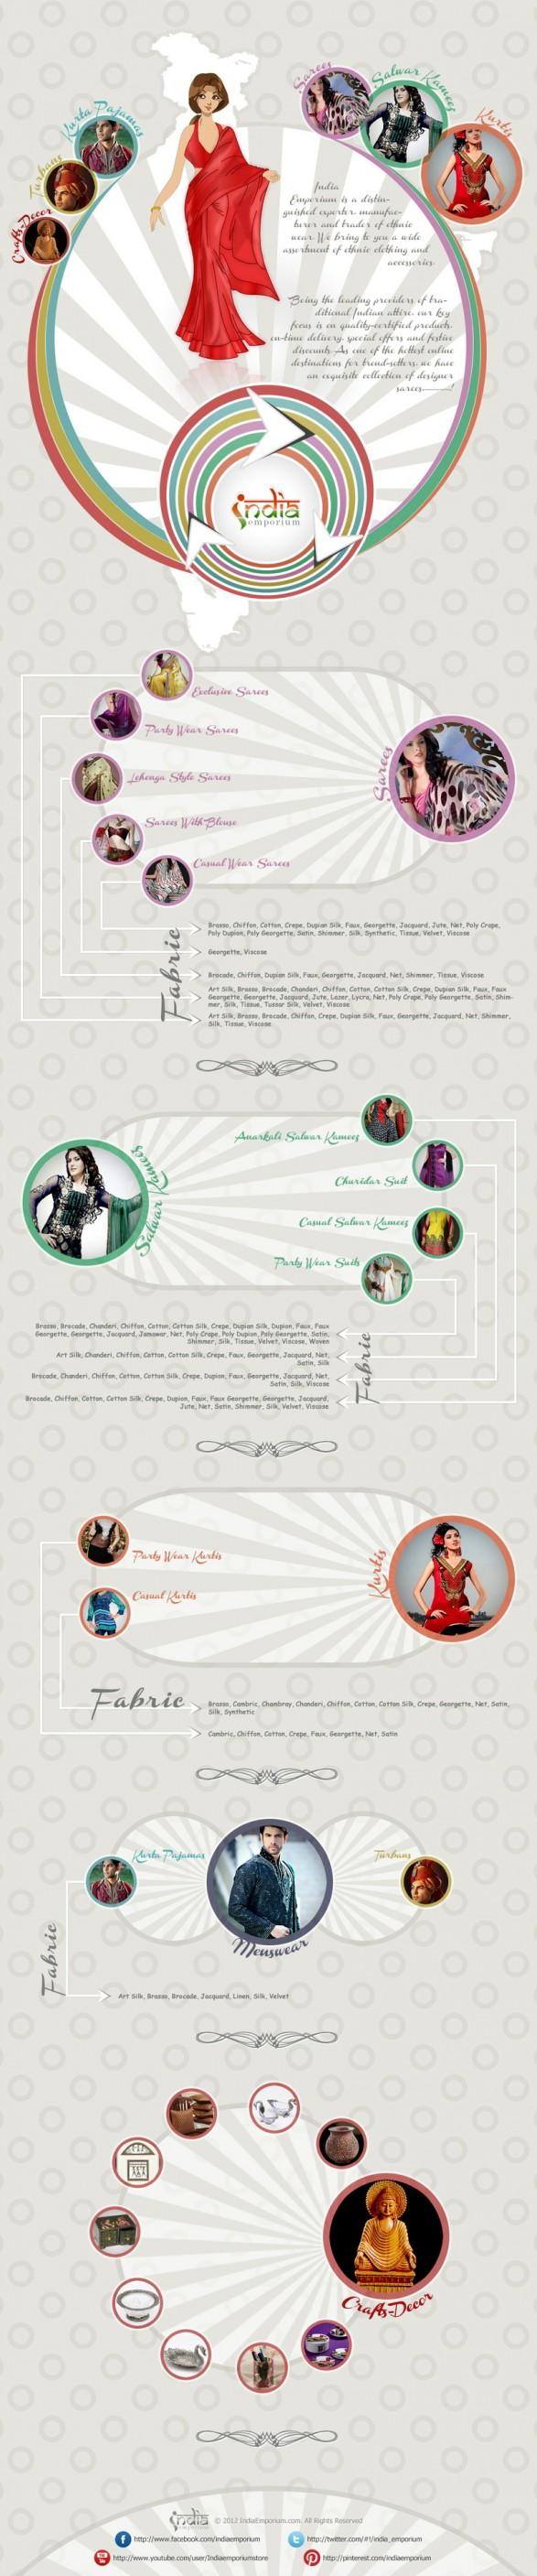 The Best of Ethnicity At Your Fingertips | Visual.ly